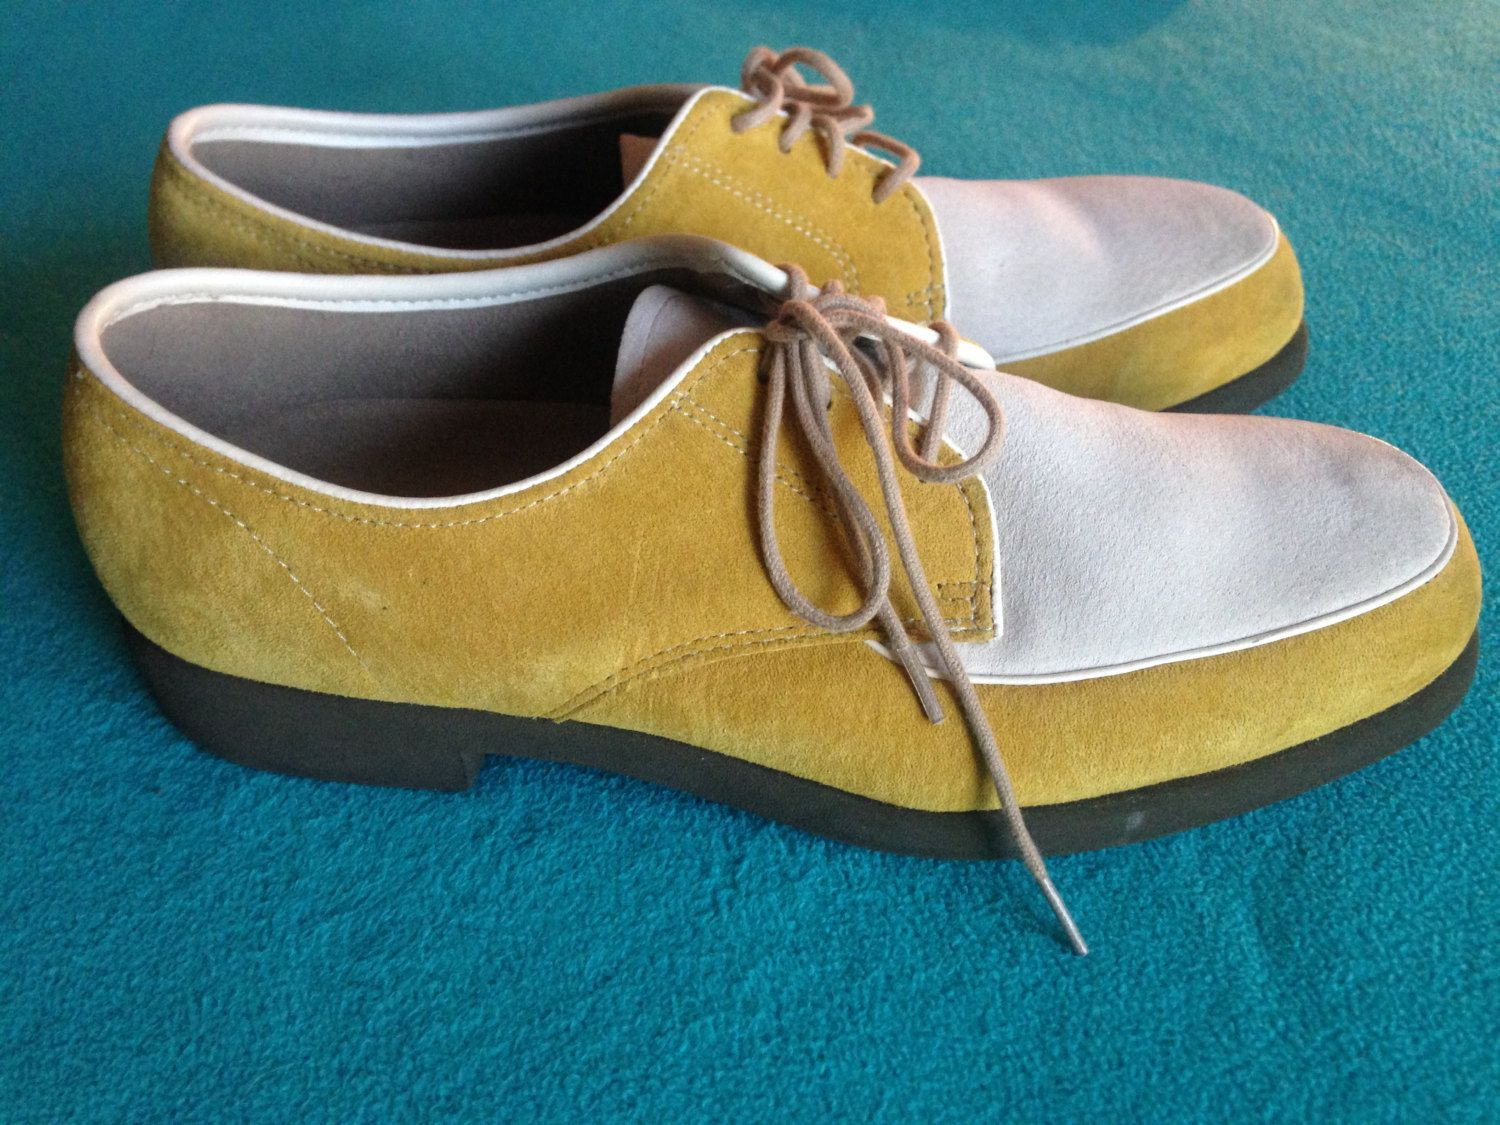 Cyber Monday Deal 70s 80s Mustard Yellow Suede Hush Puppies Men S Shoes Dress Shoes Creepers Oxfor Hush Puppies Mens Shoes Dress Shoes Men Vintage Clothing Men